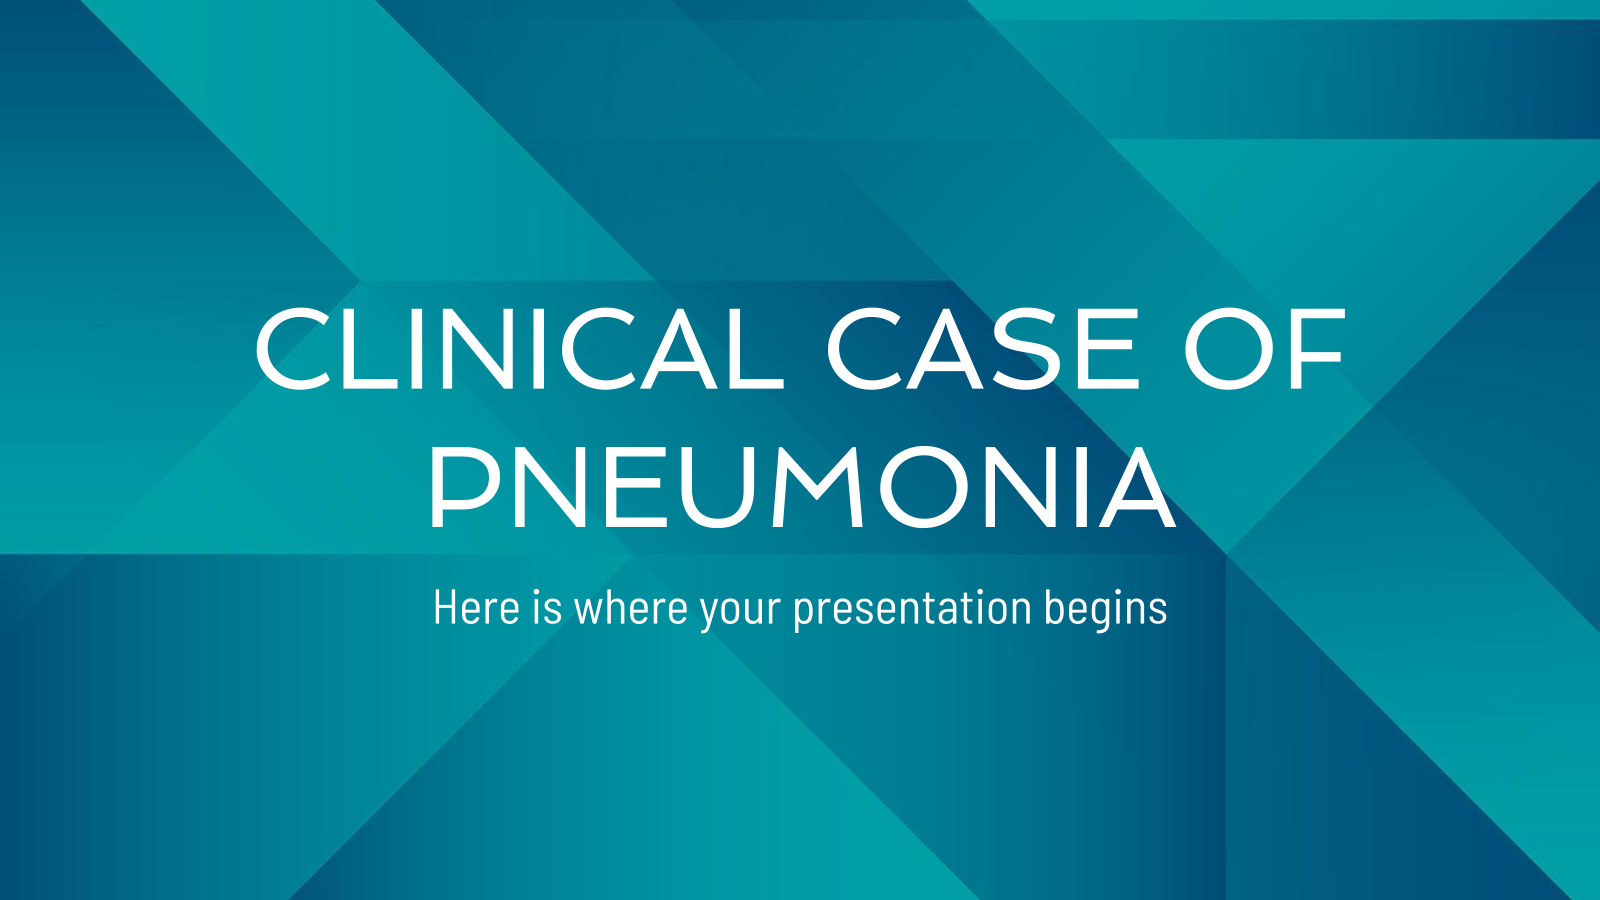 Clinical Case of Pneumonia presentation template